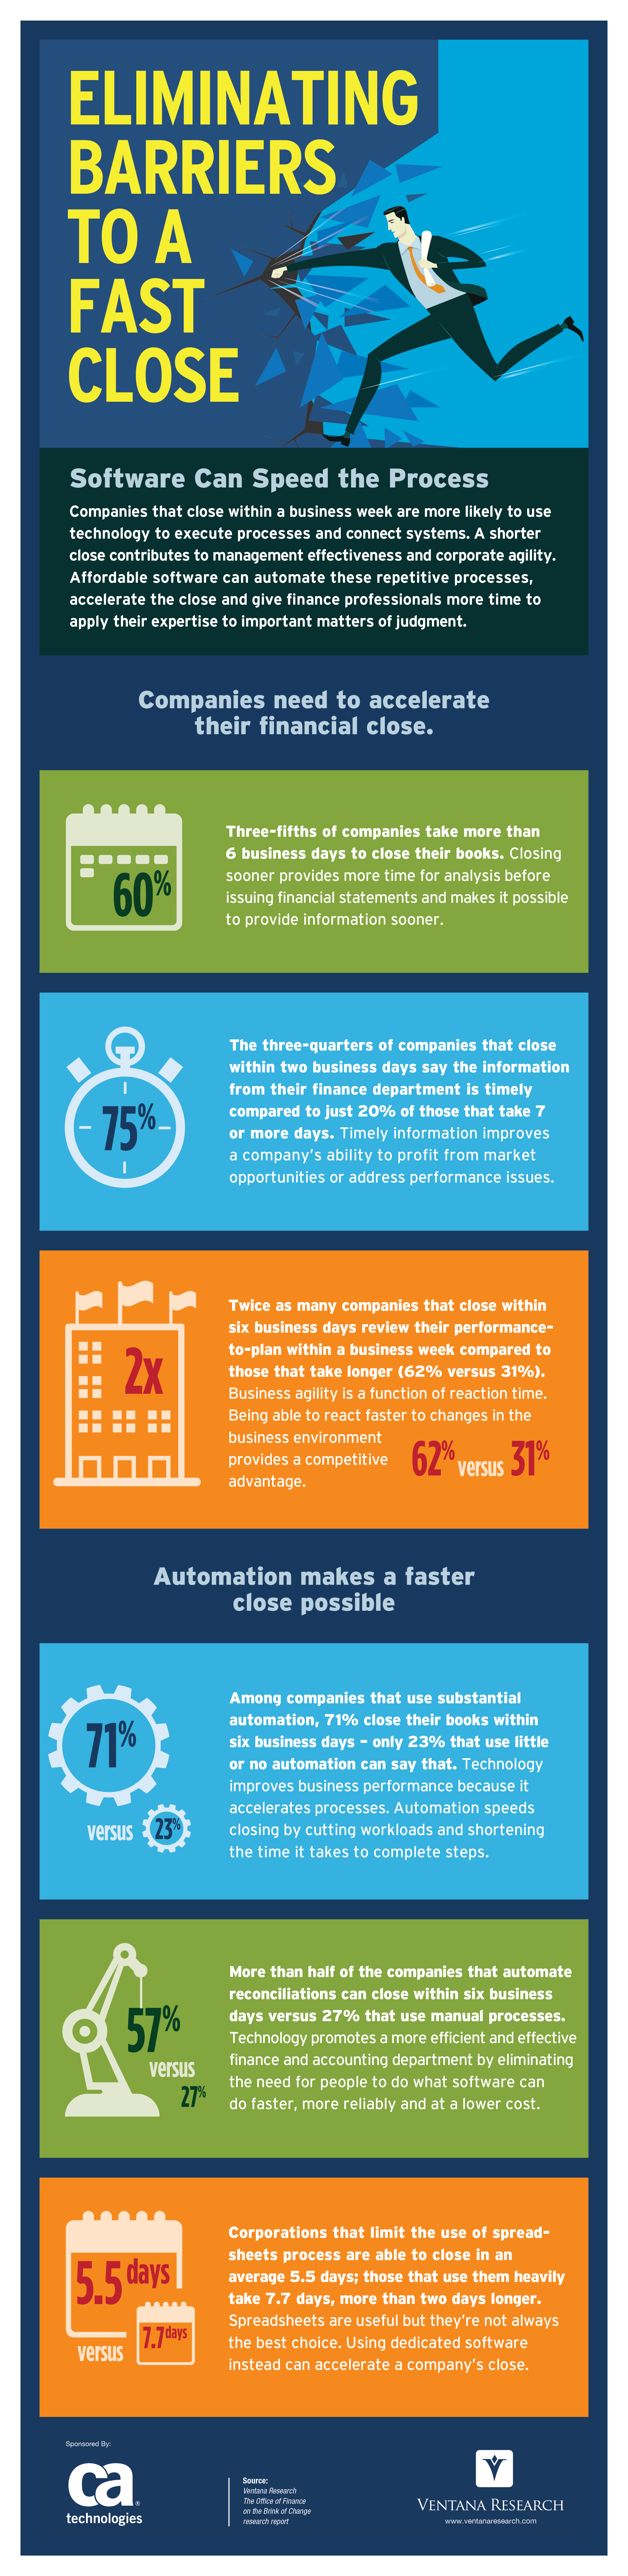 Ventana_Research_Infographic_Fast_Closing_(Automic)_2019.png